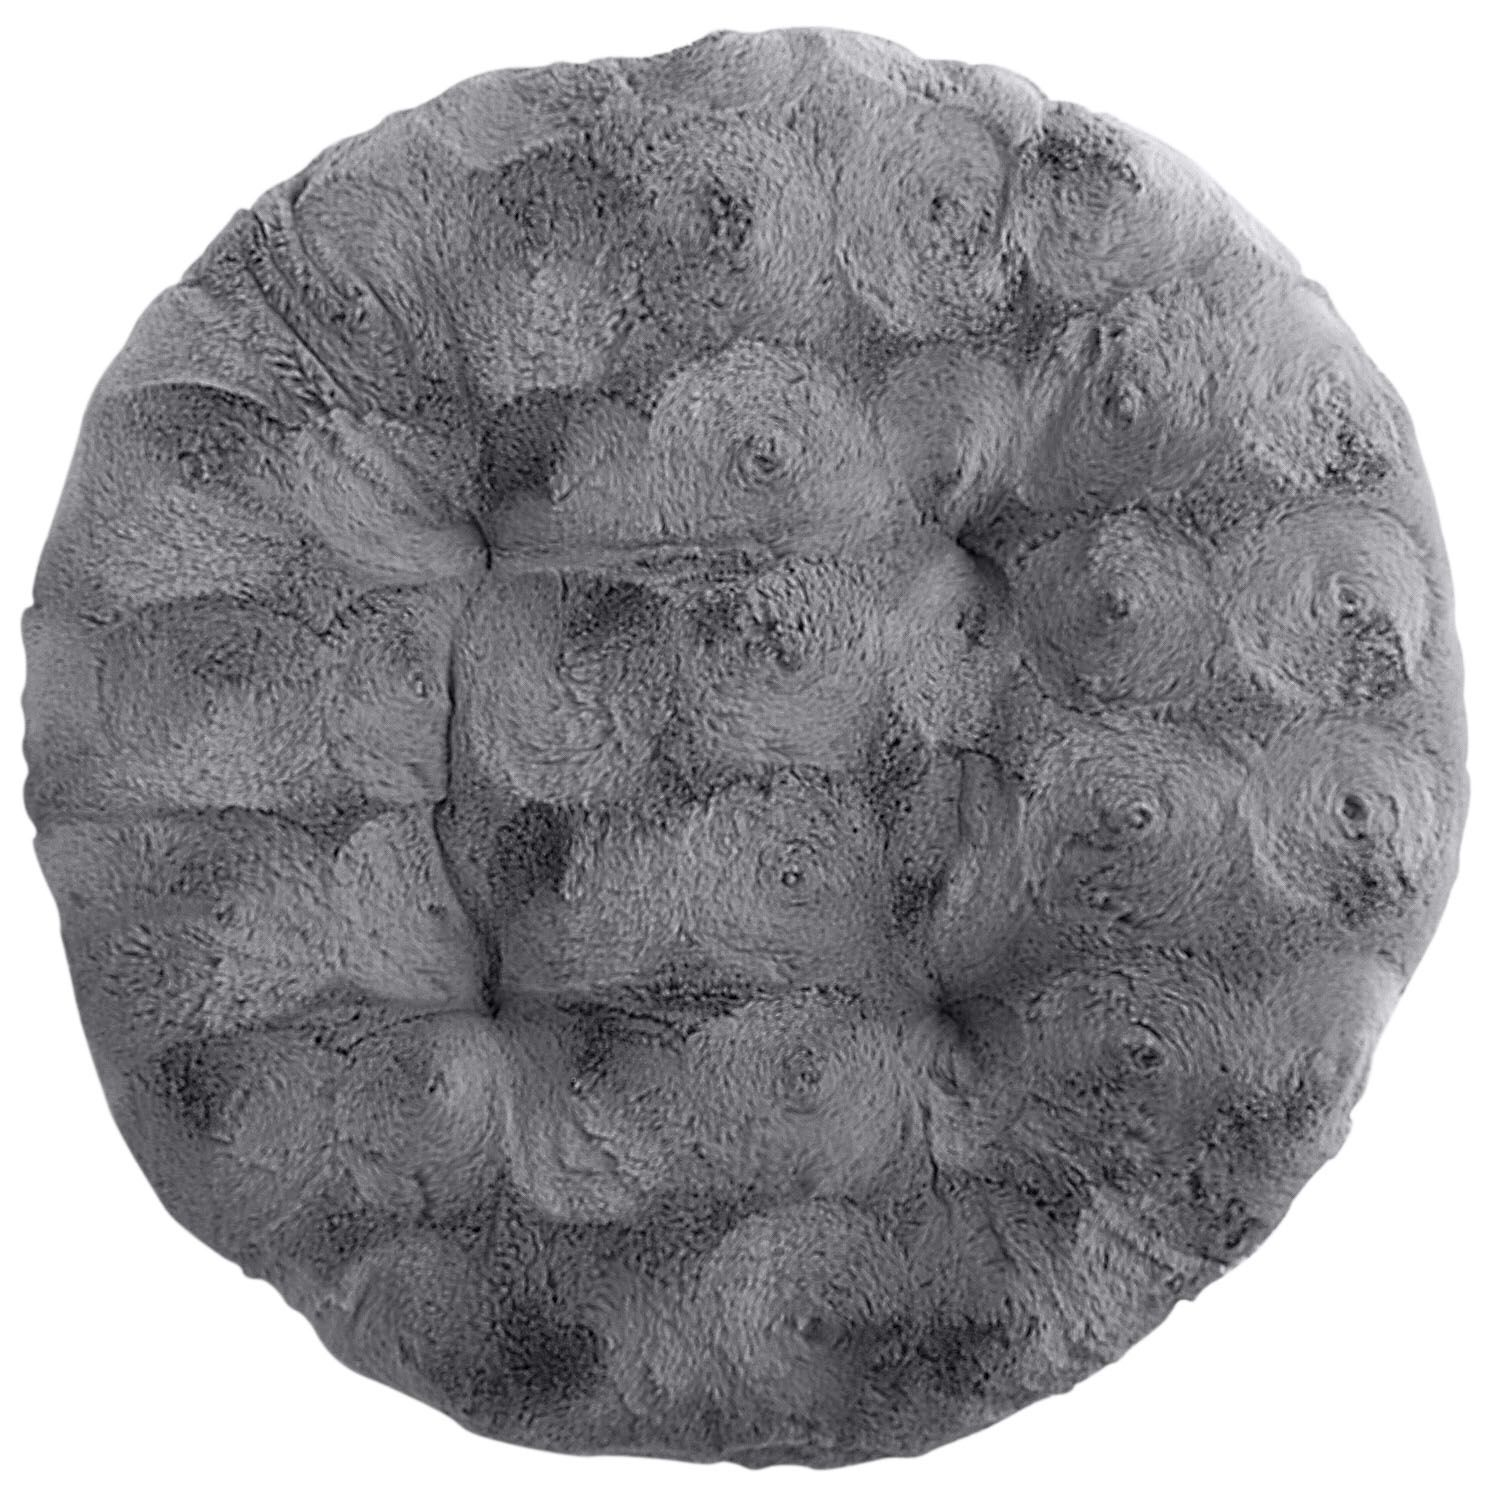 papasan chair stool cushions fisher price spacesaver high cover fuzzy charcoal cushion products pinterest gray